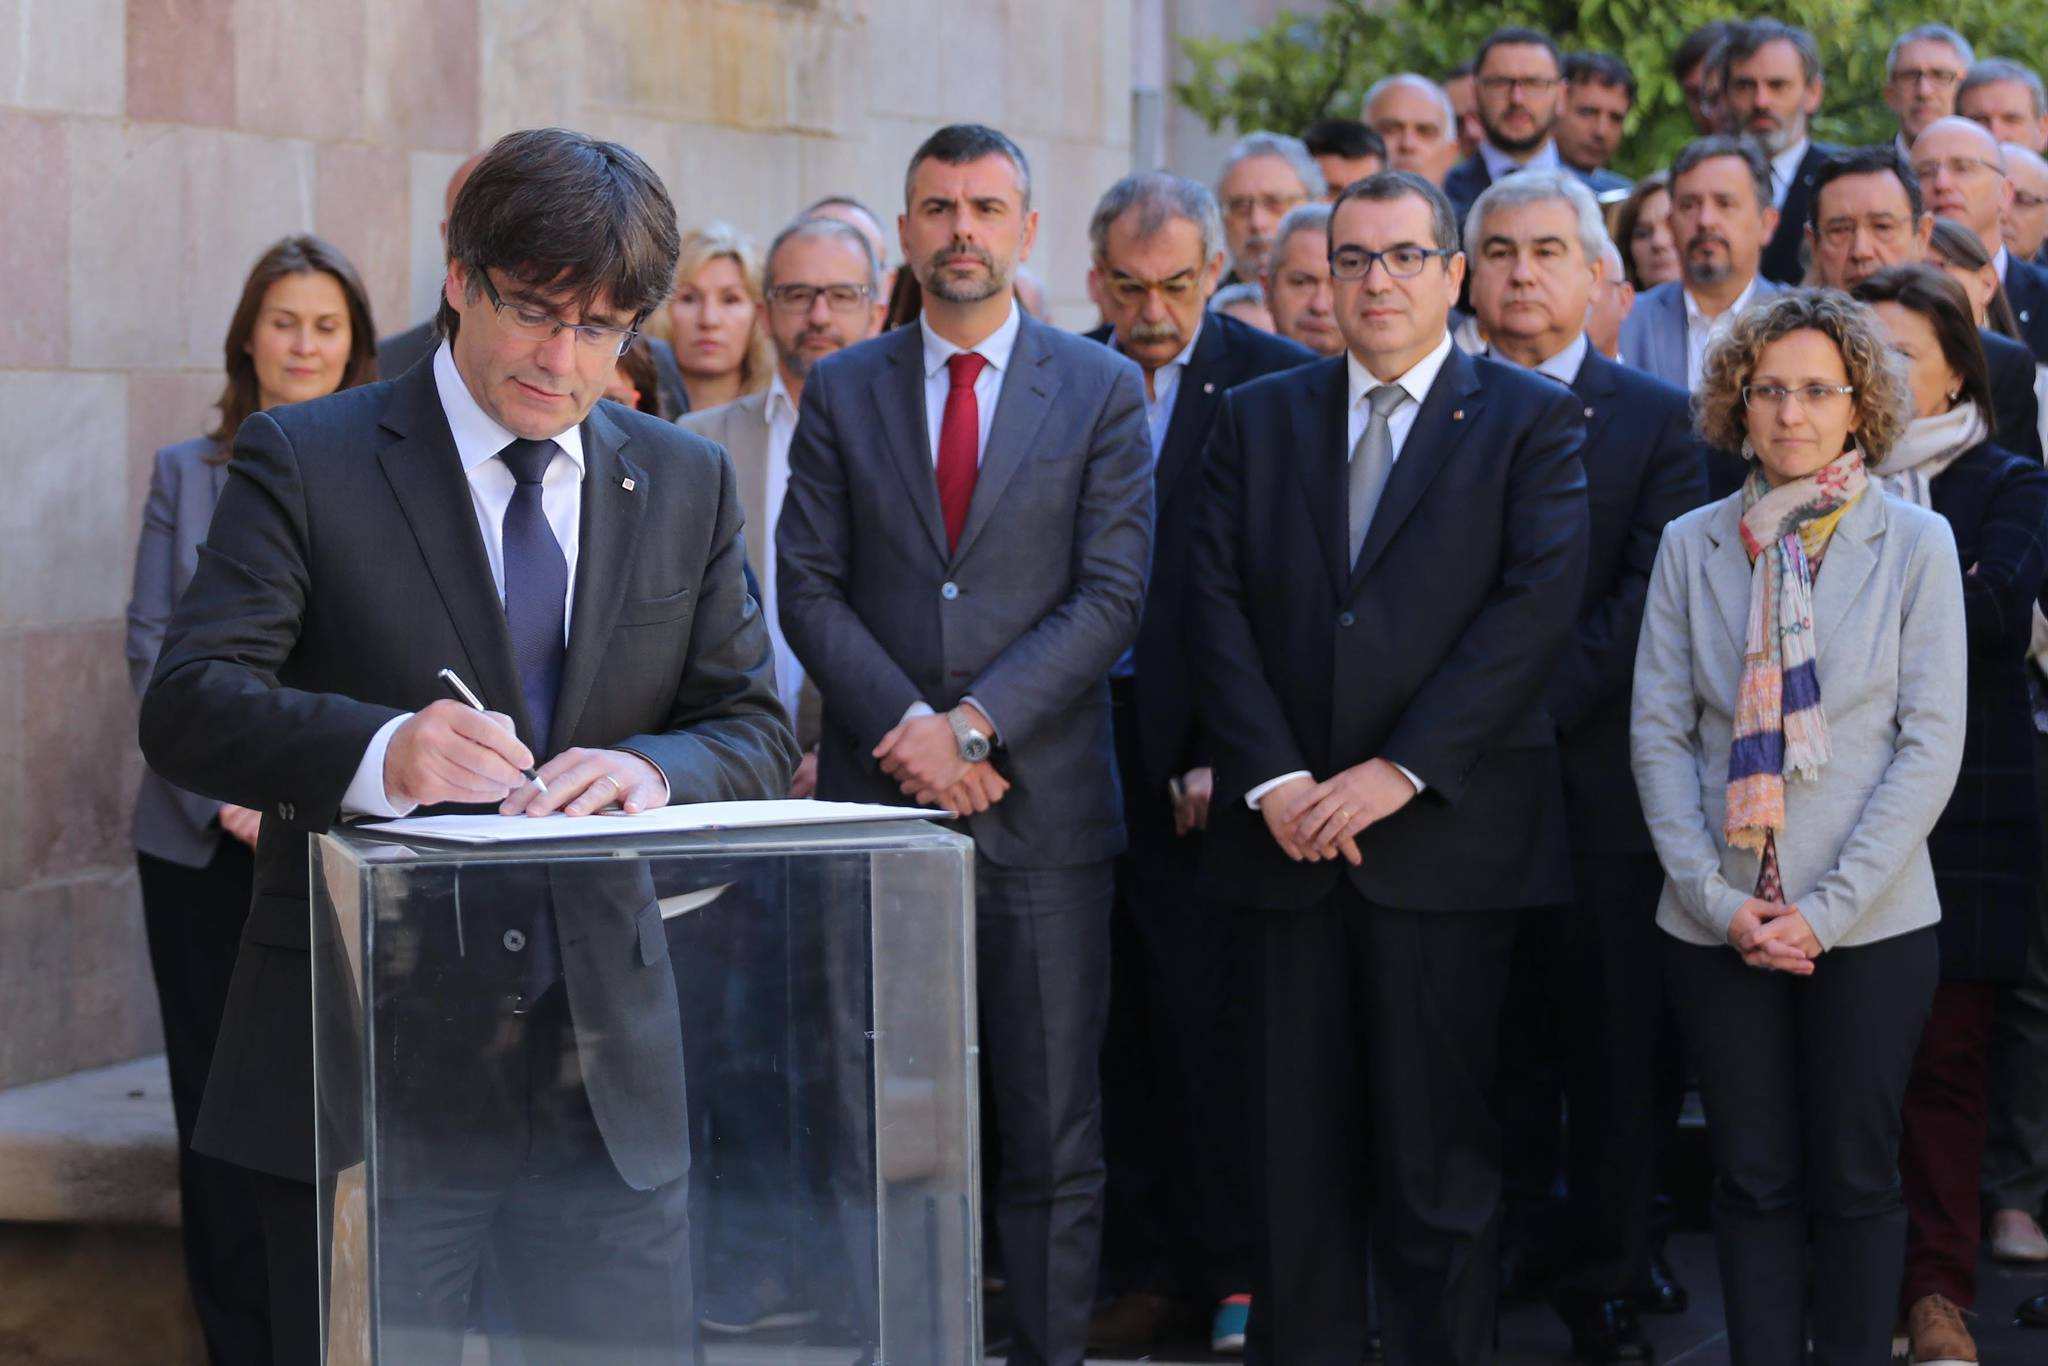 President Puigdemont signs the manifesto